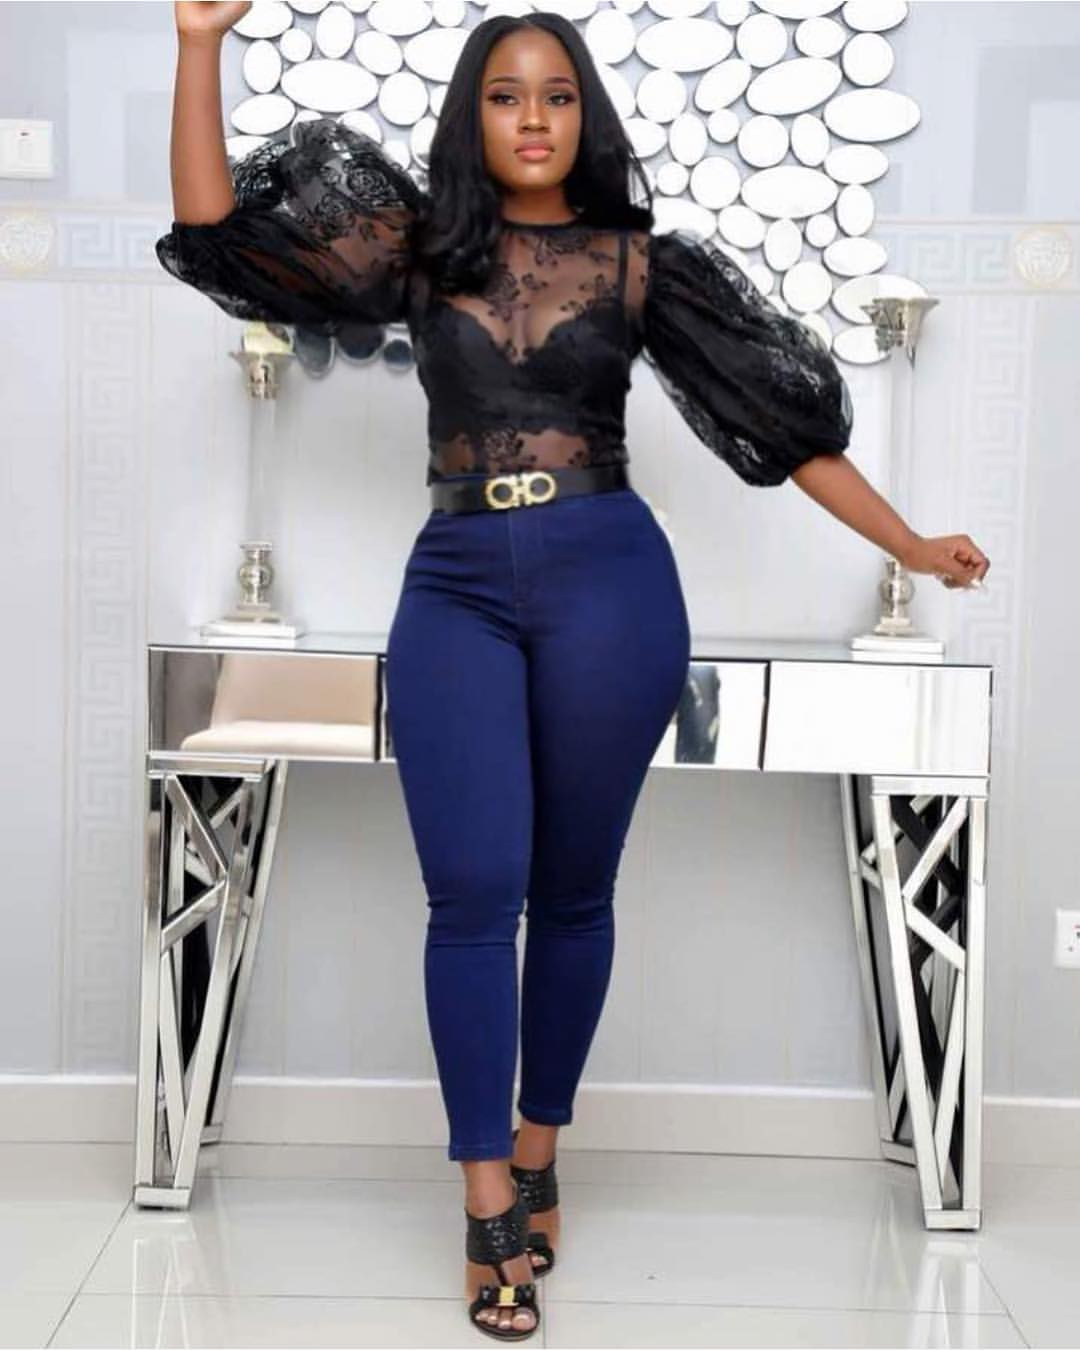 BBNaija's Cee-C Sexy In Figure-Hugging Jeans And See-Through Top